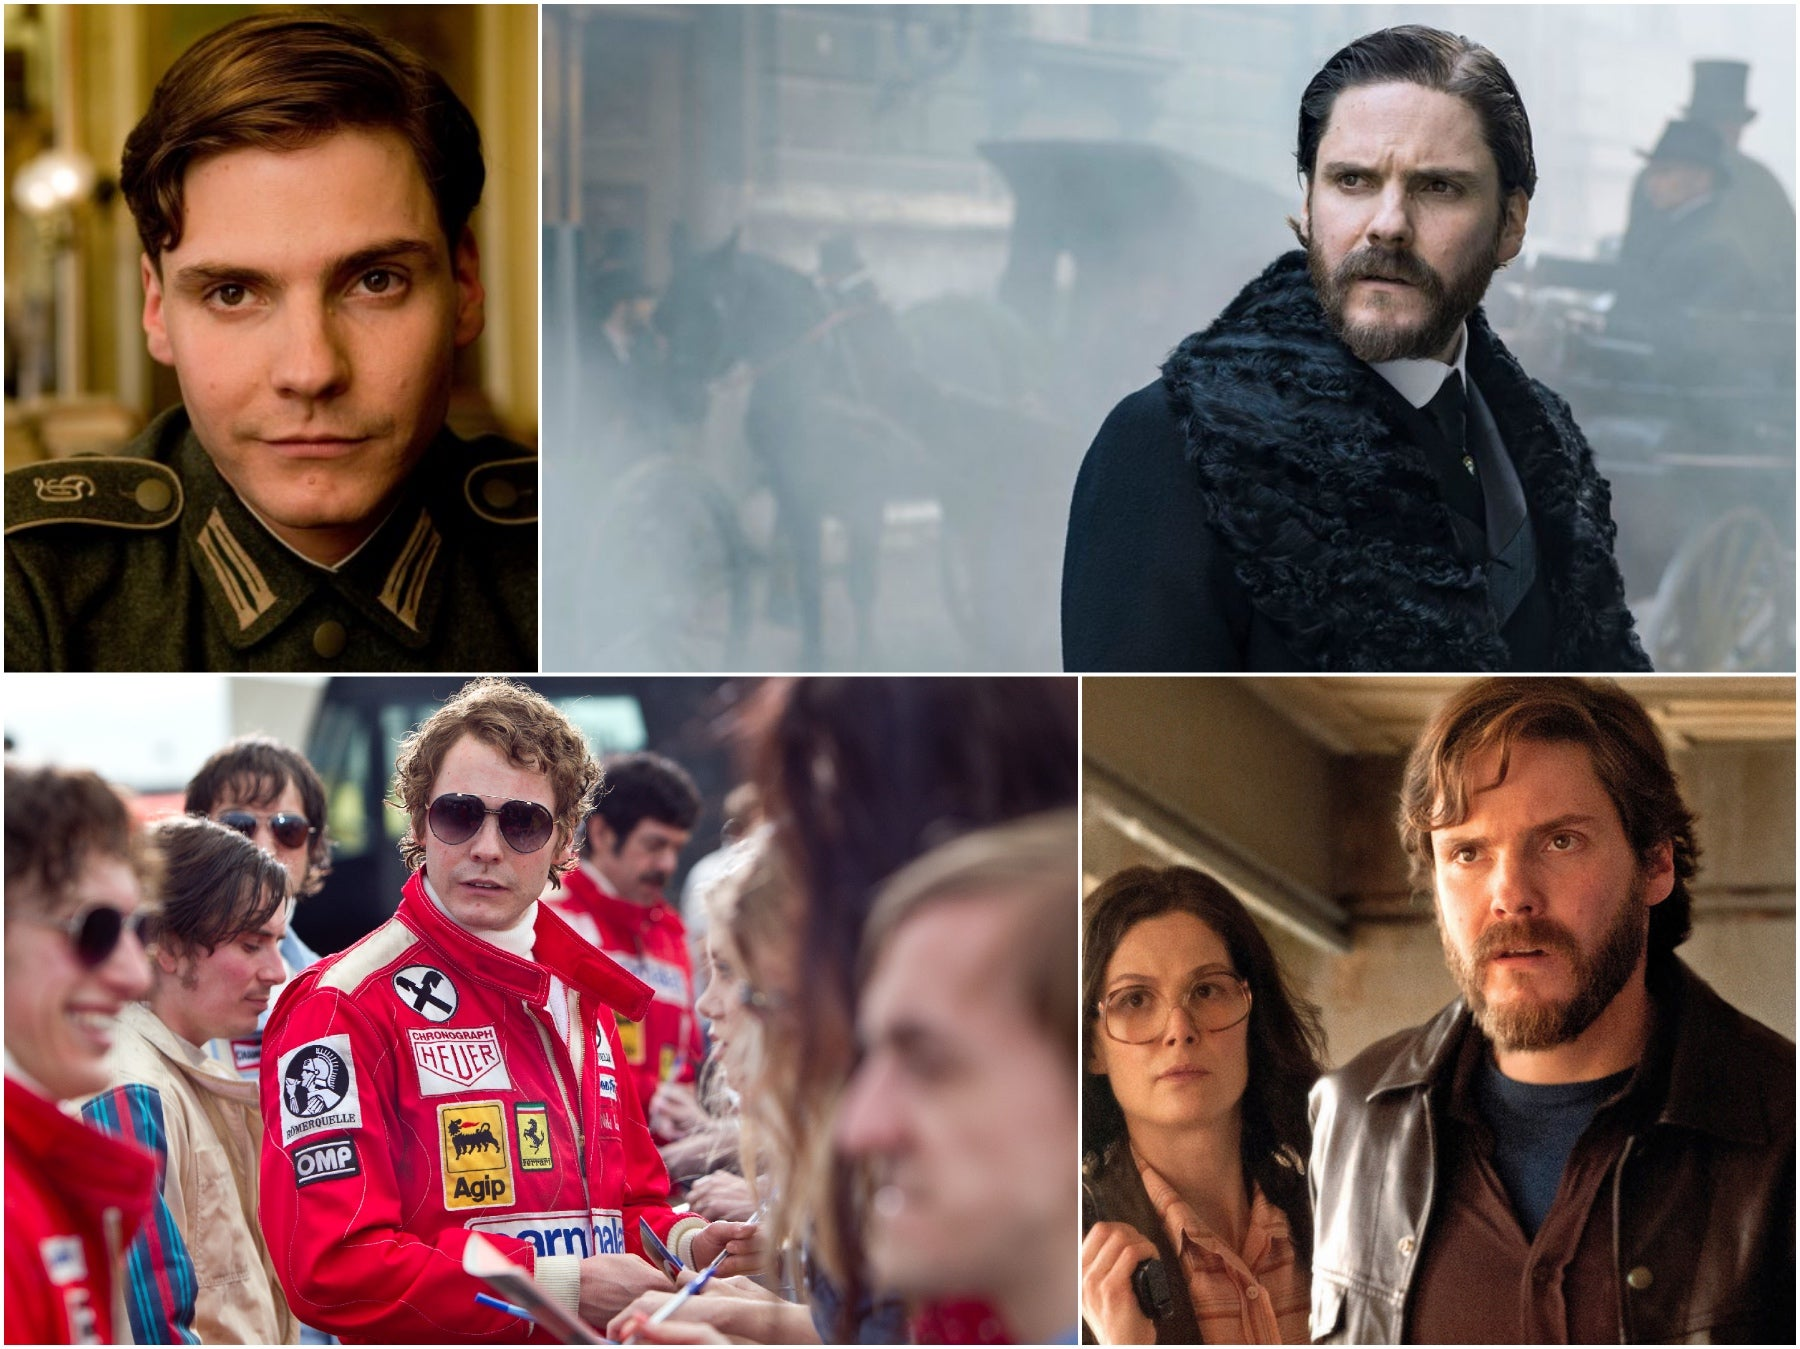 Scenes from movies and T series starring Daniel Bruhl